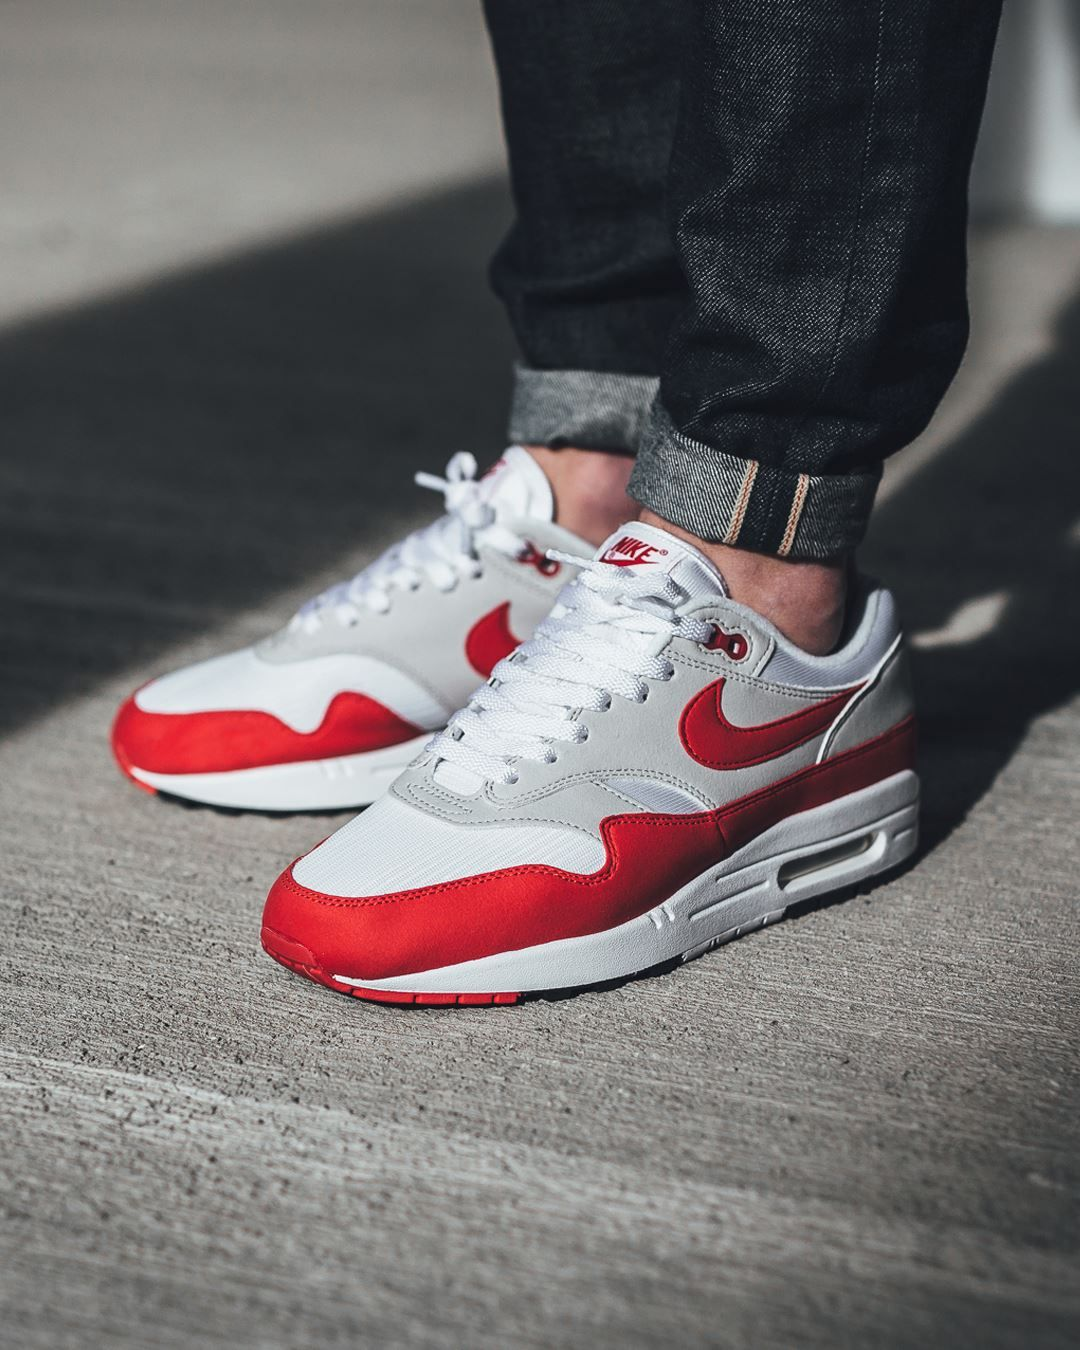 Fonética La cabra Billy Perenne  Le restock de la Nike Air Max 1 dans son coloris OG c'est demain | WAVE® | Nike  air max, Air max 1, Air max